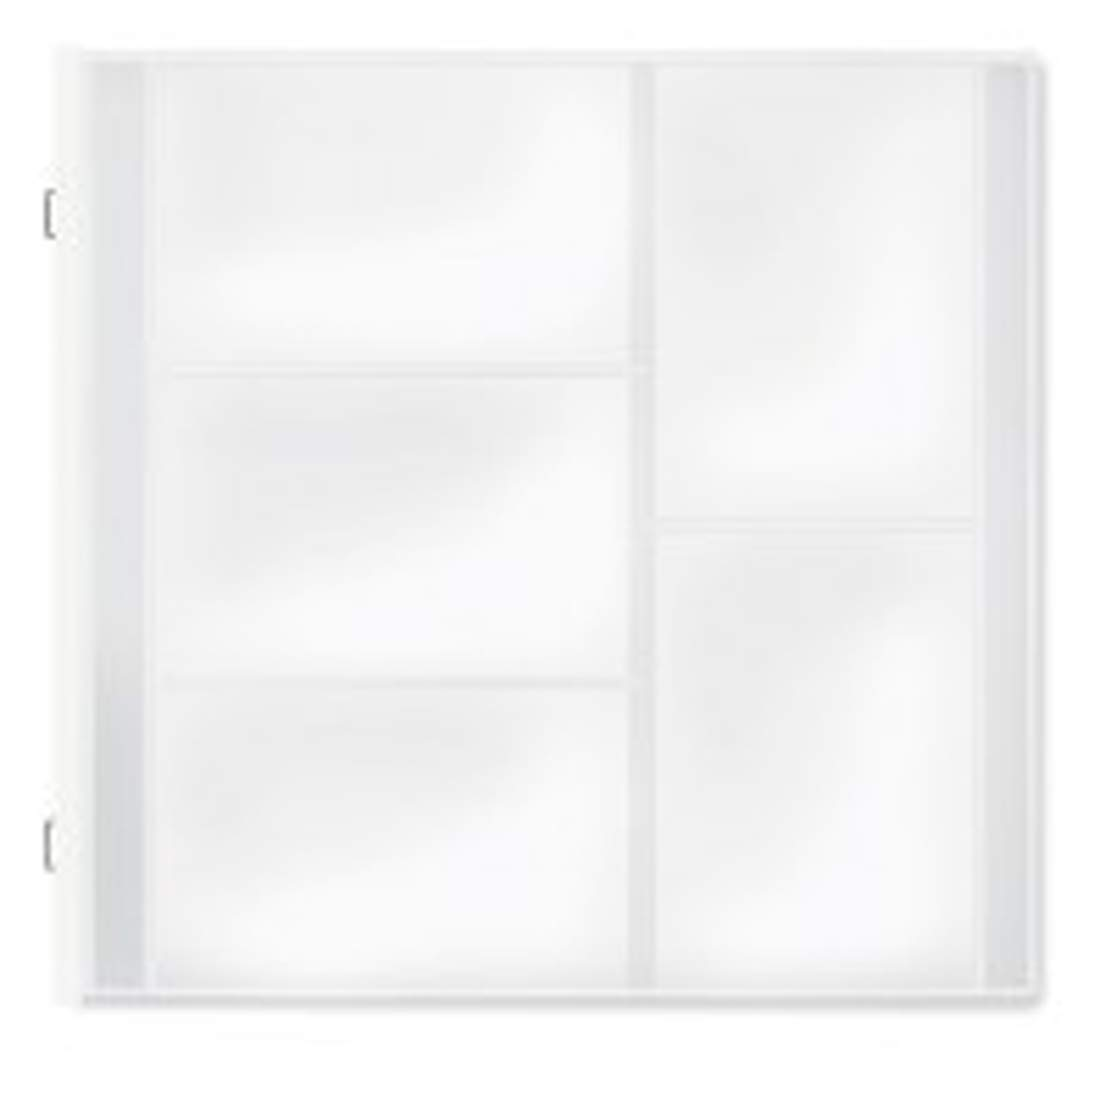 12x12 Multi-Pocket Pages (12/pk) by Creative Memories 654783